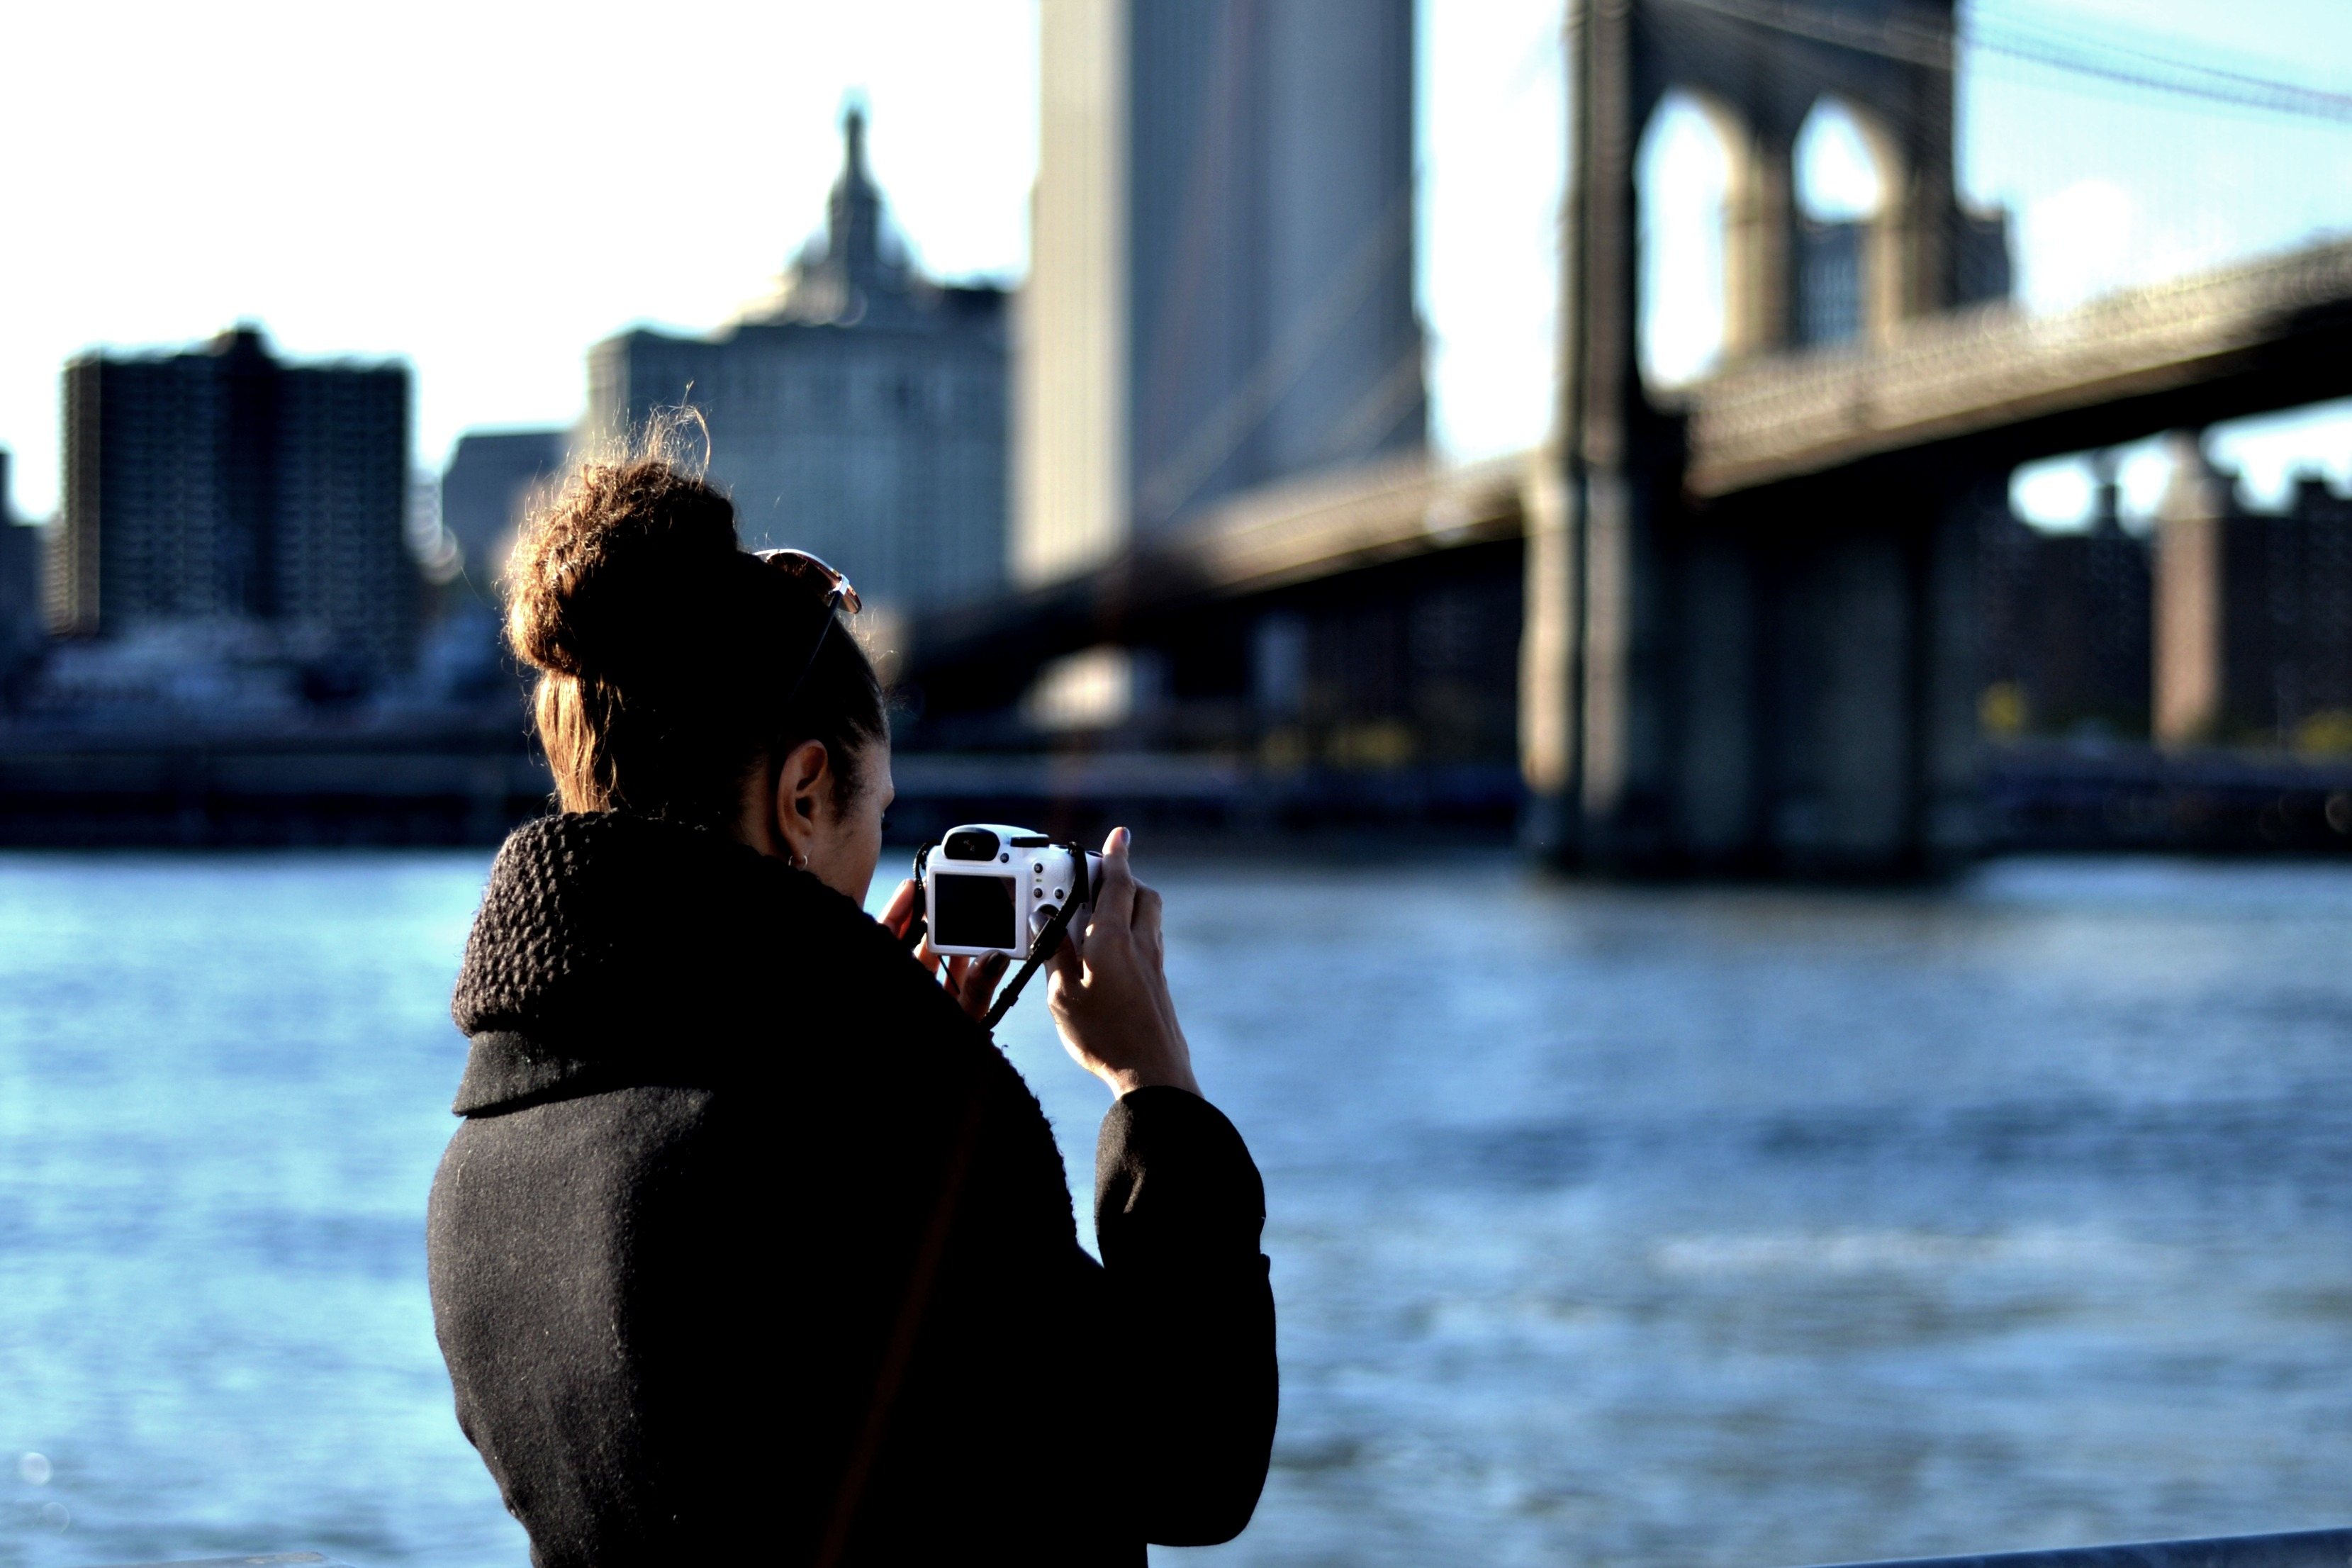 Taking photos in Dumbo Park3